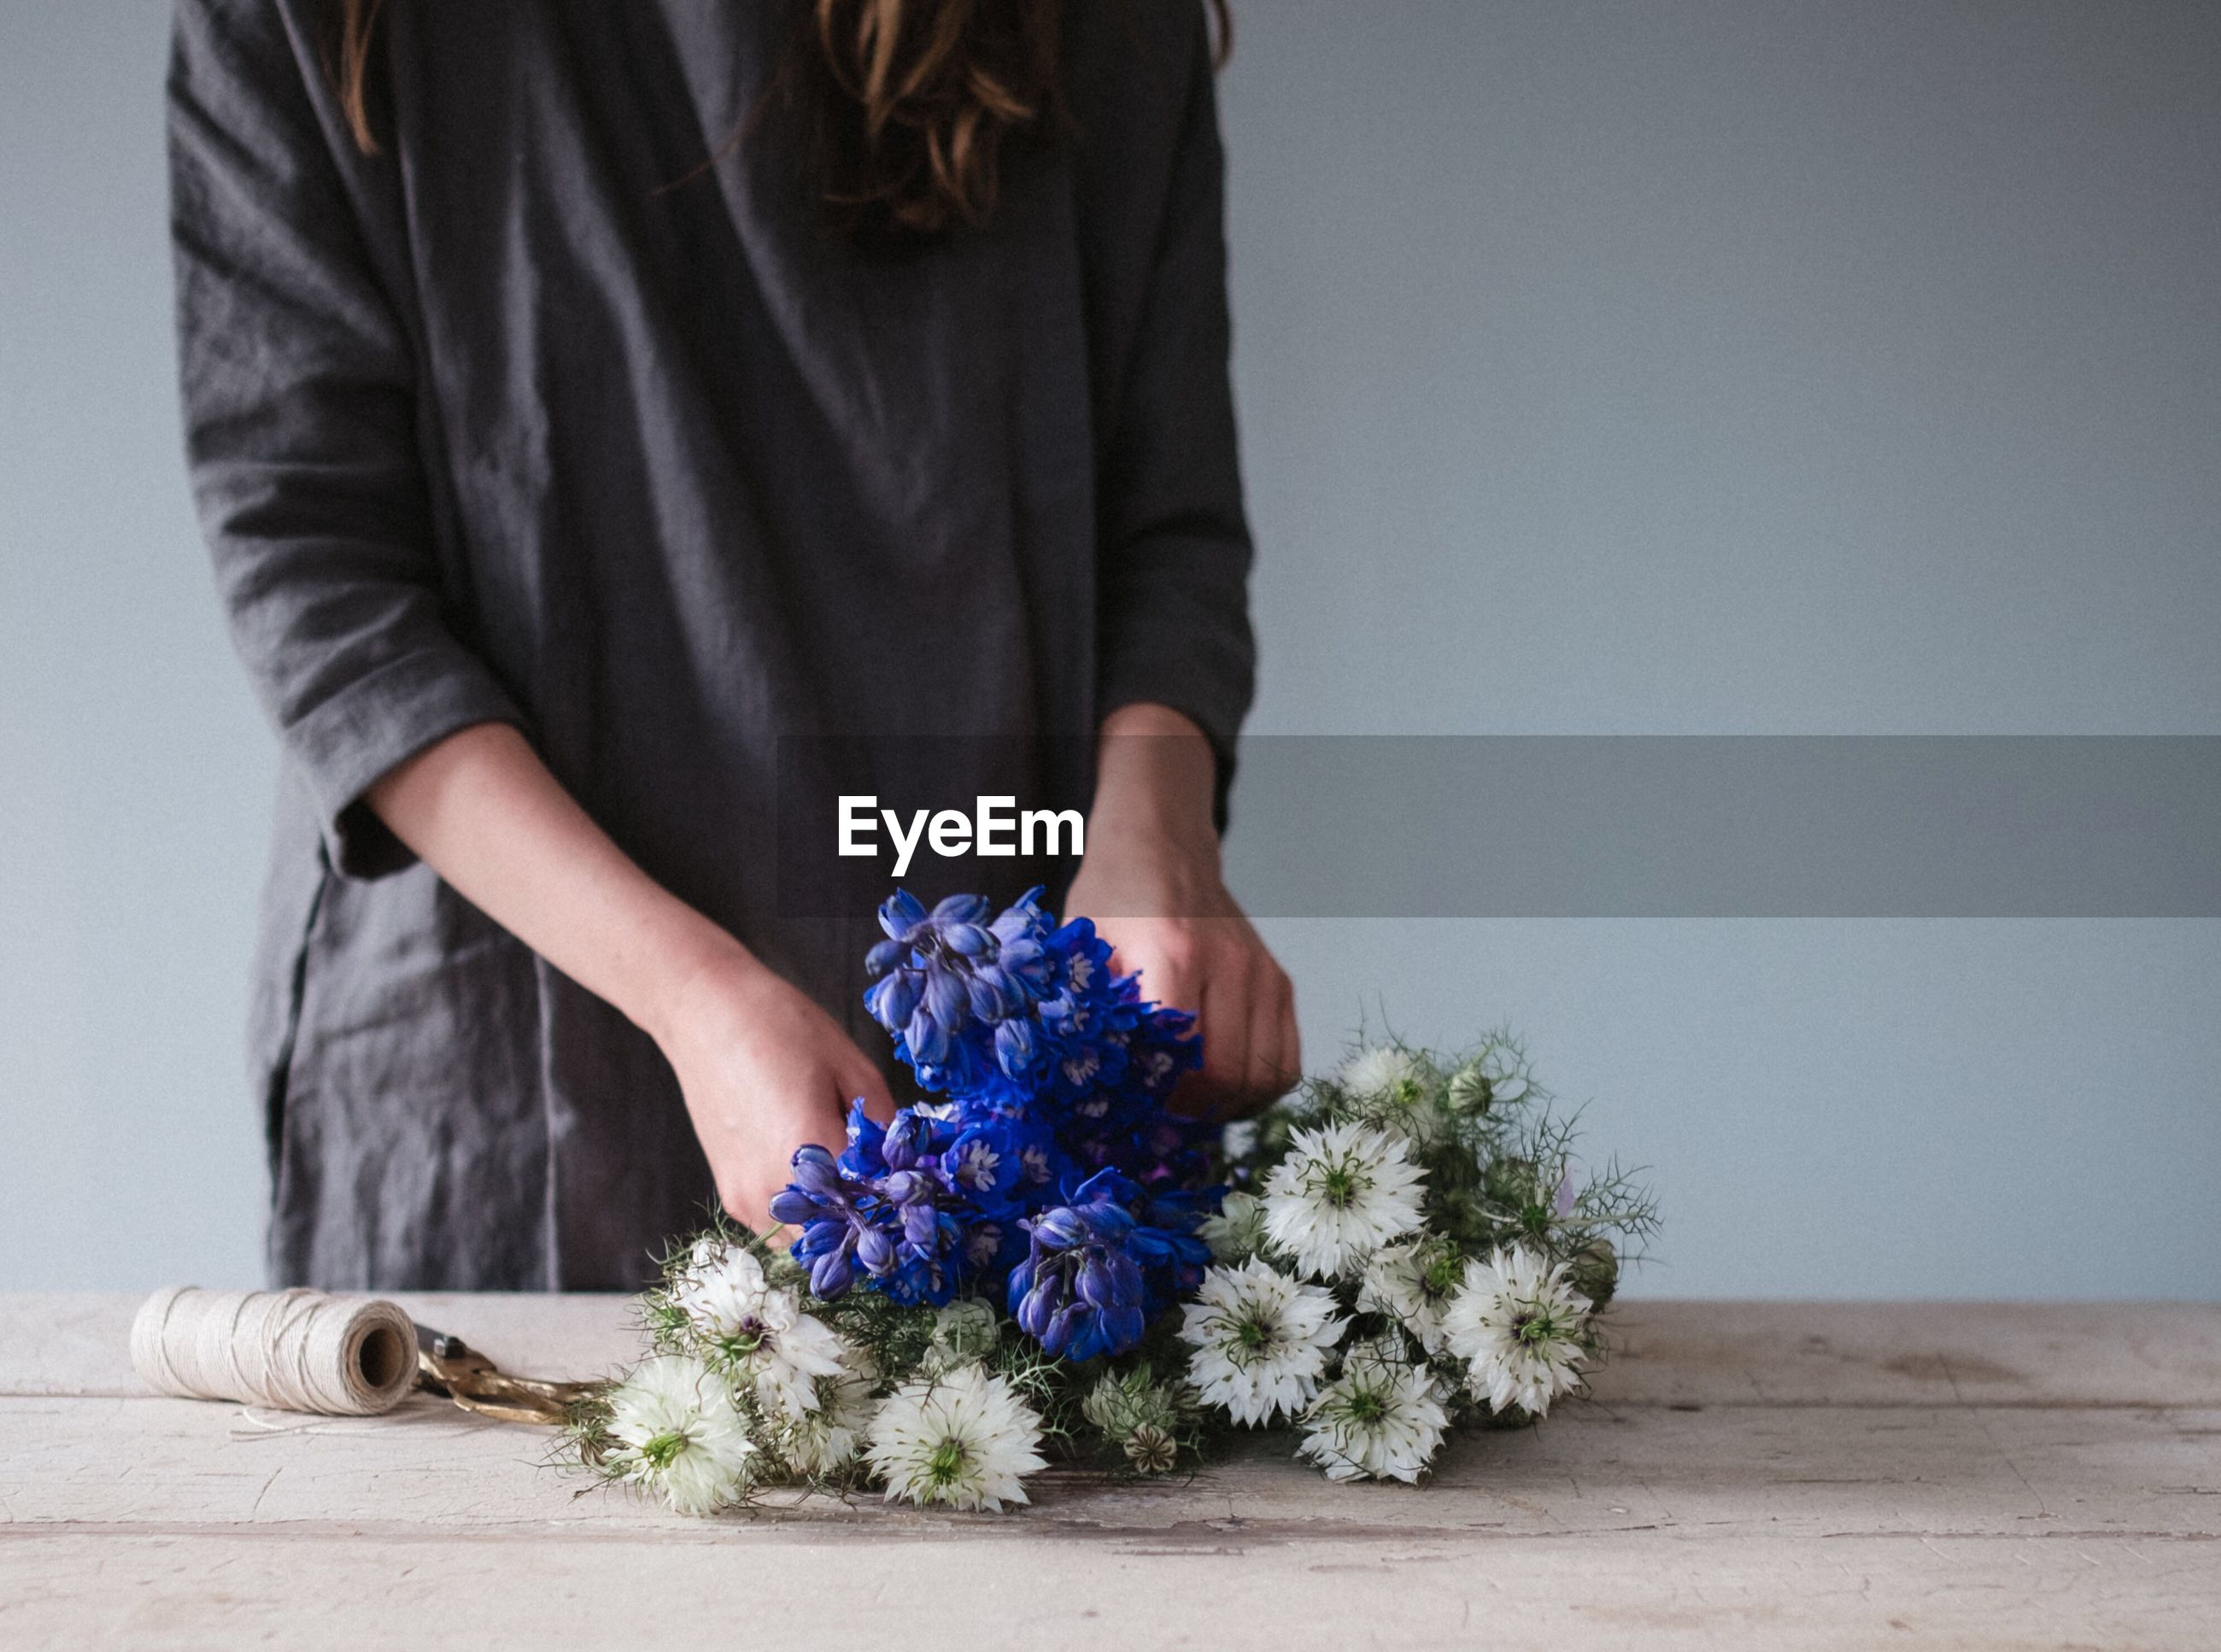 Midsection of woman tying flowers at table against wall